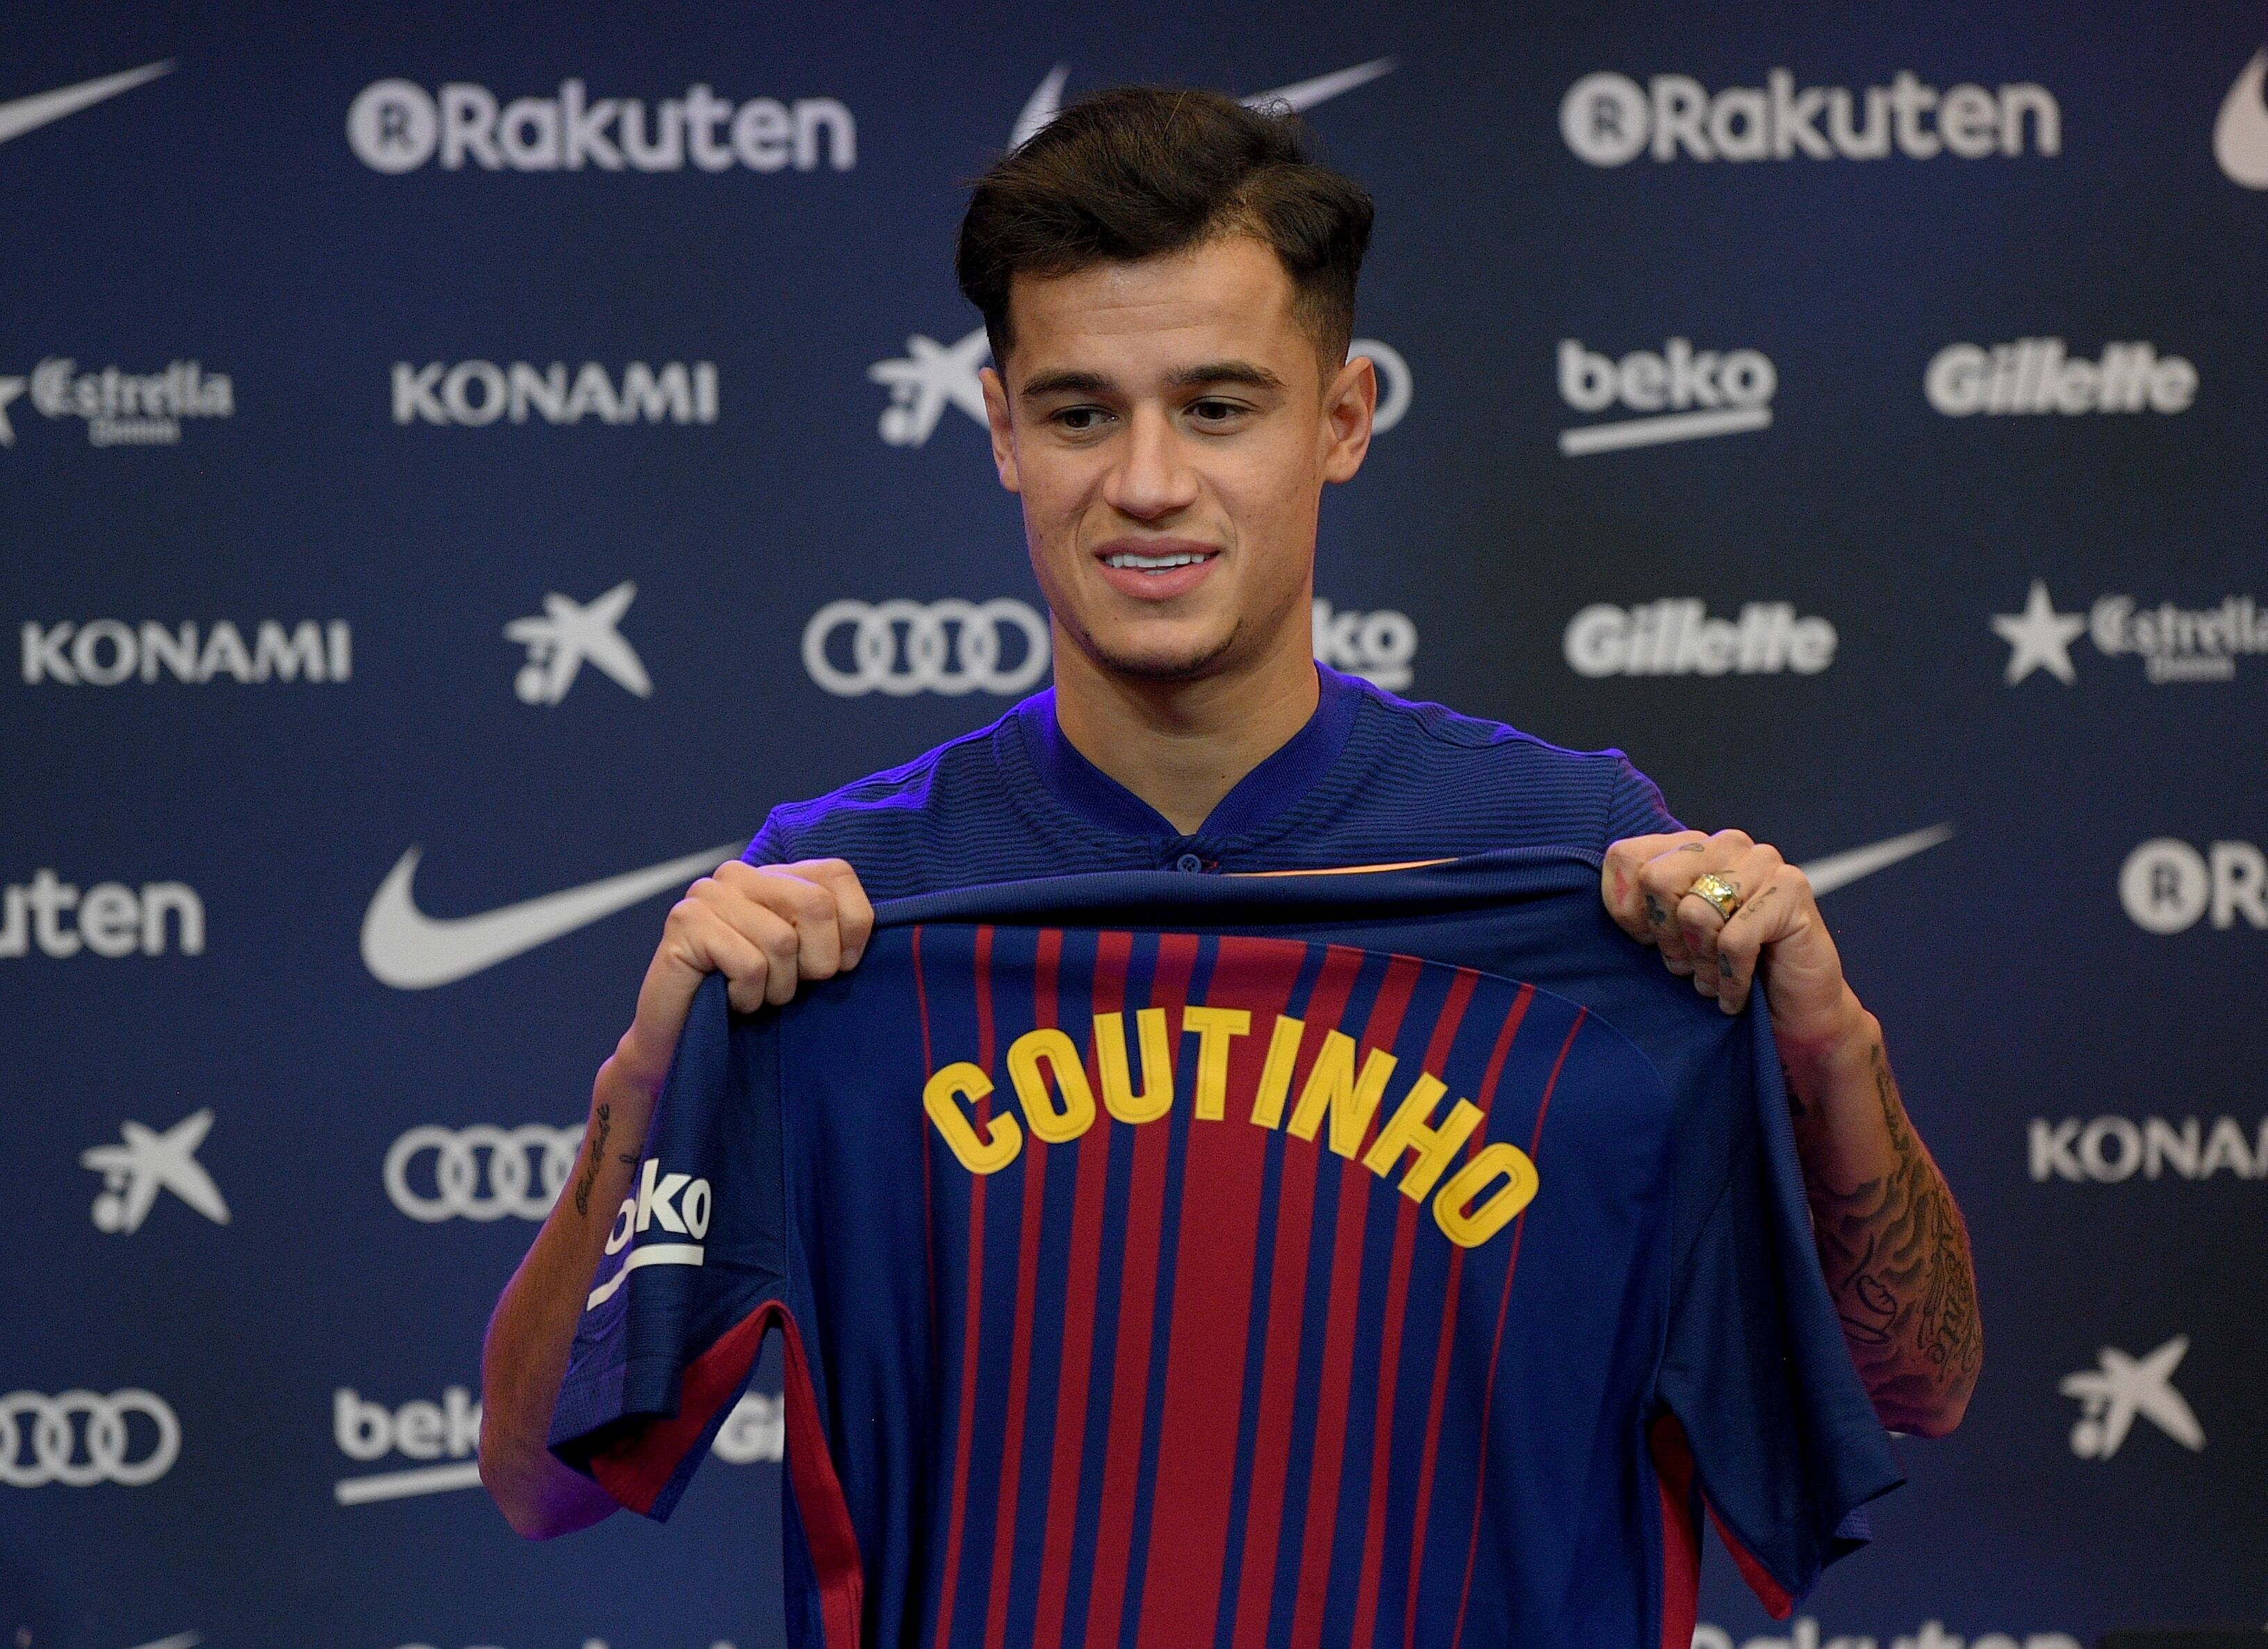 902560800-new-barcelona-signing-philippe-coutinho-unveiled.jpg